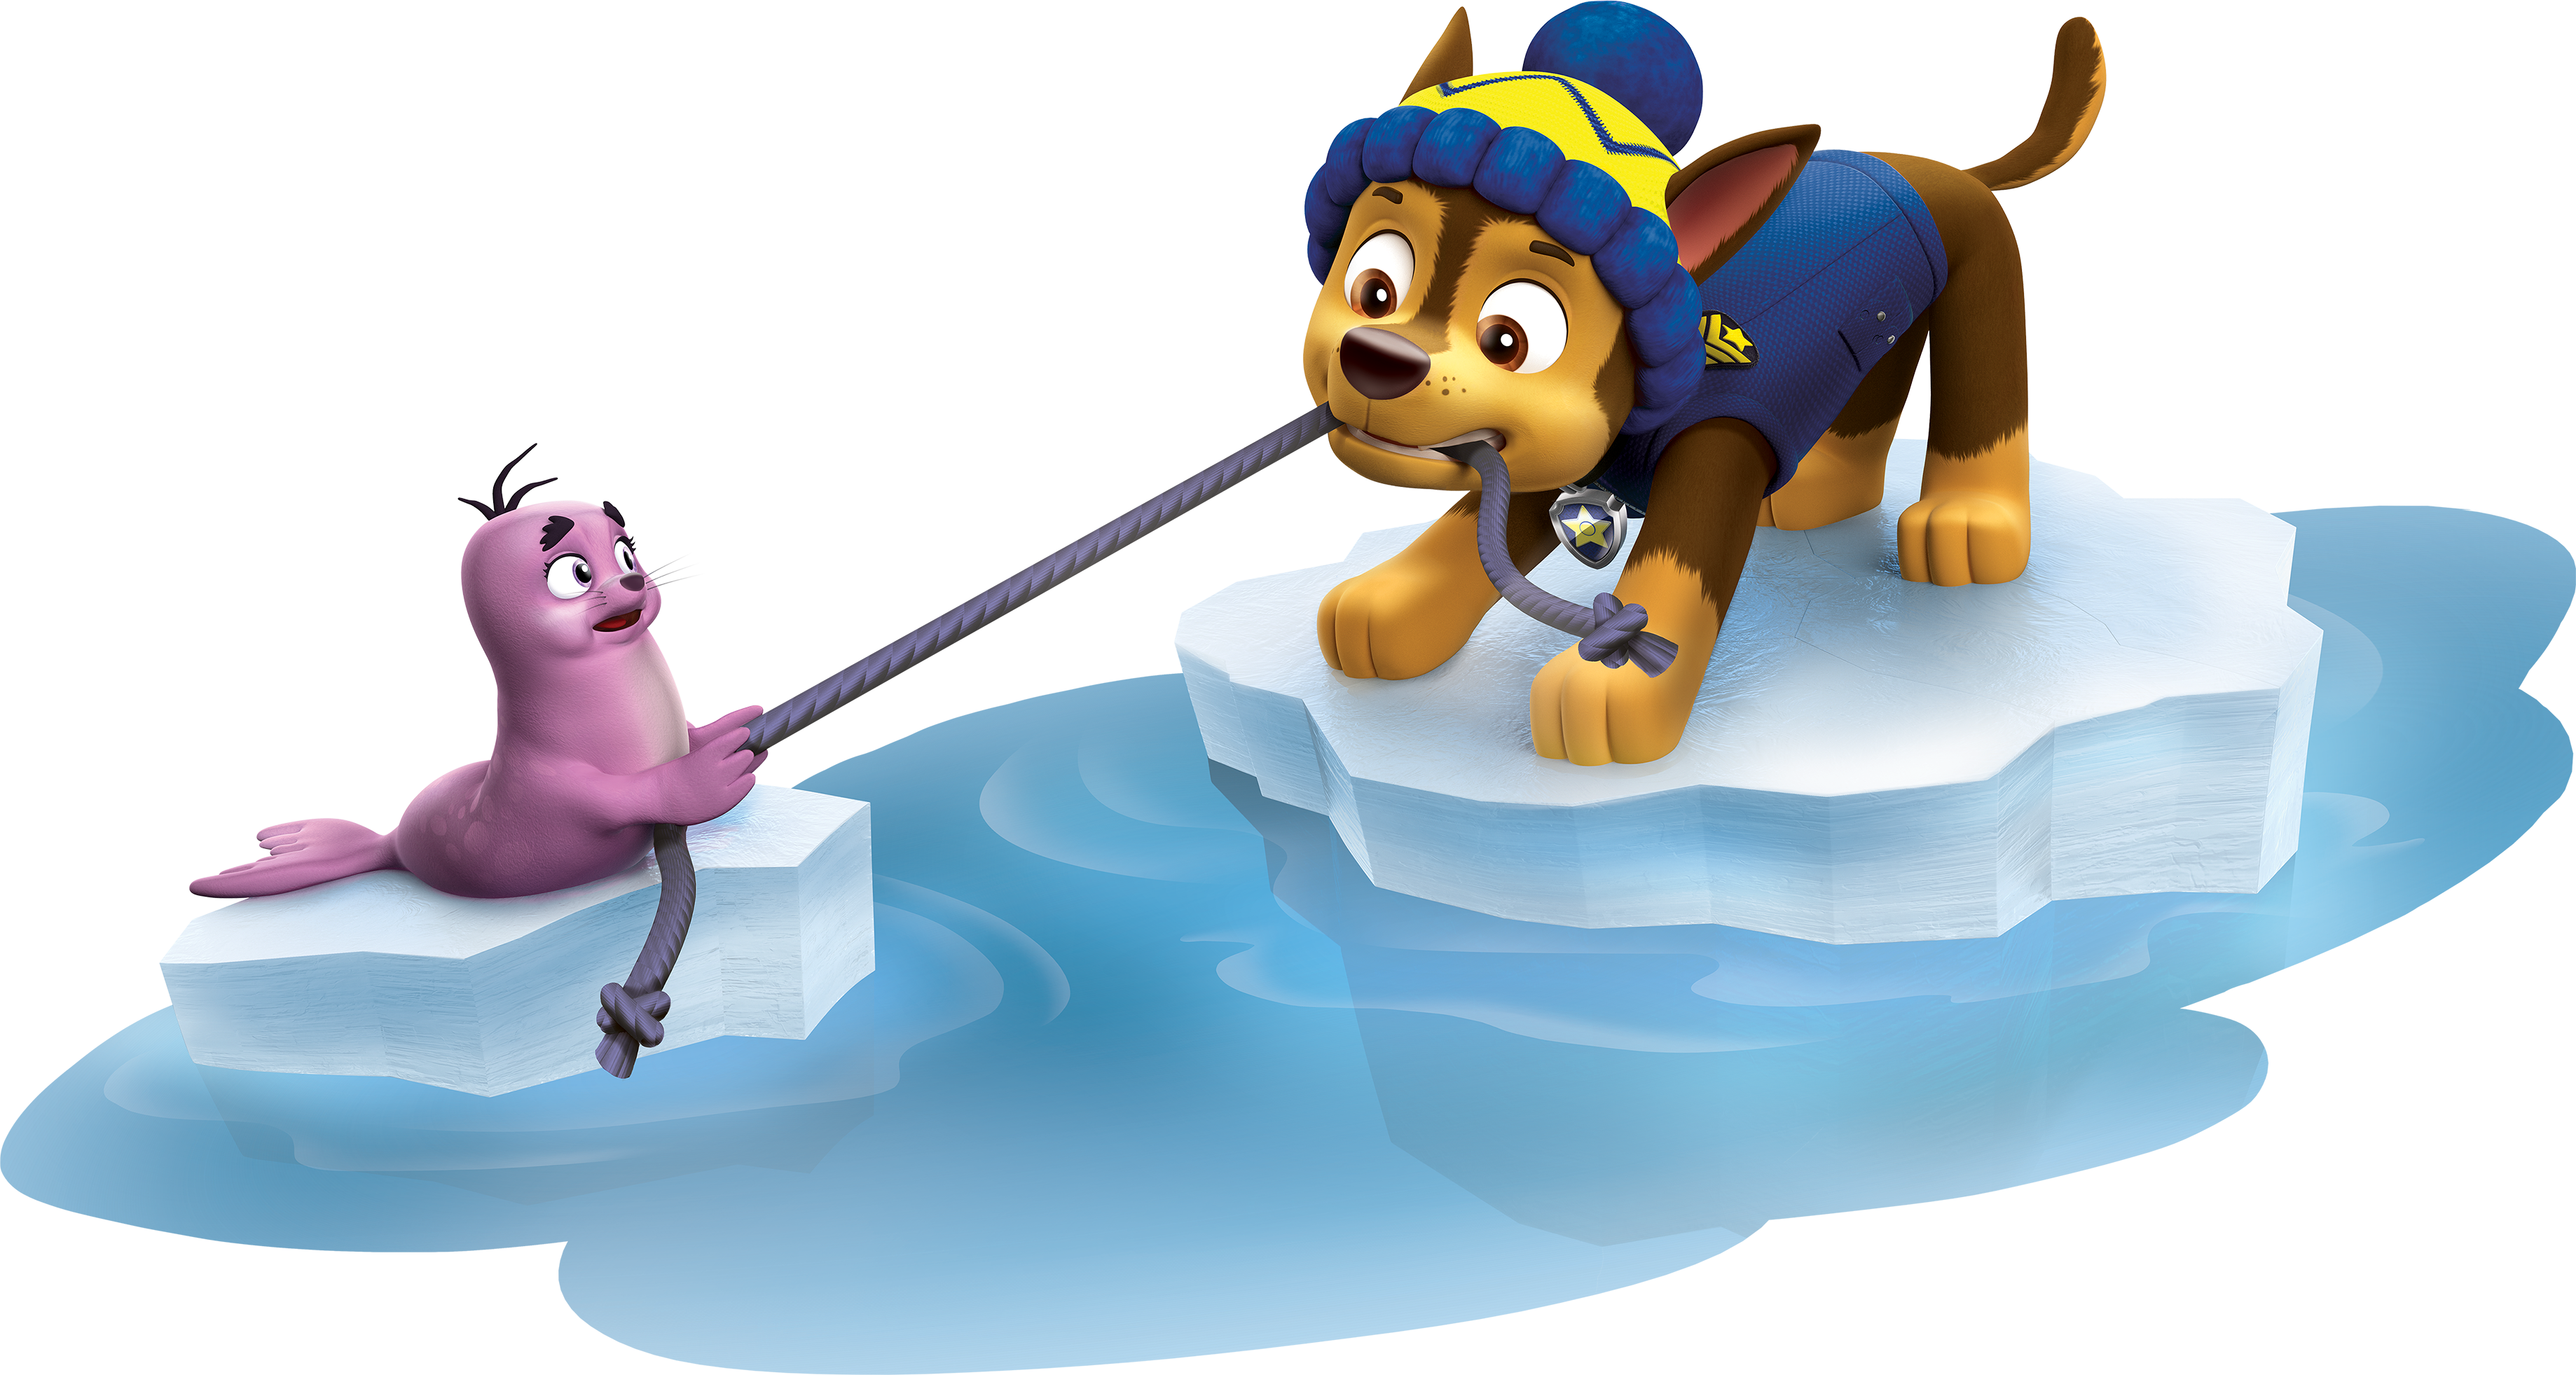 Transparent paw patrol clip art - Chase Having Fun Paw Patrol Clipart Png - Chase Paw Patrol Winter